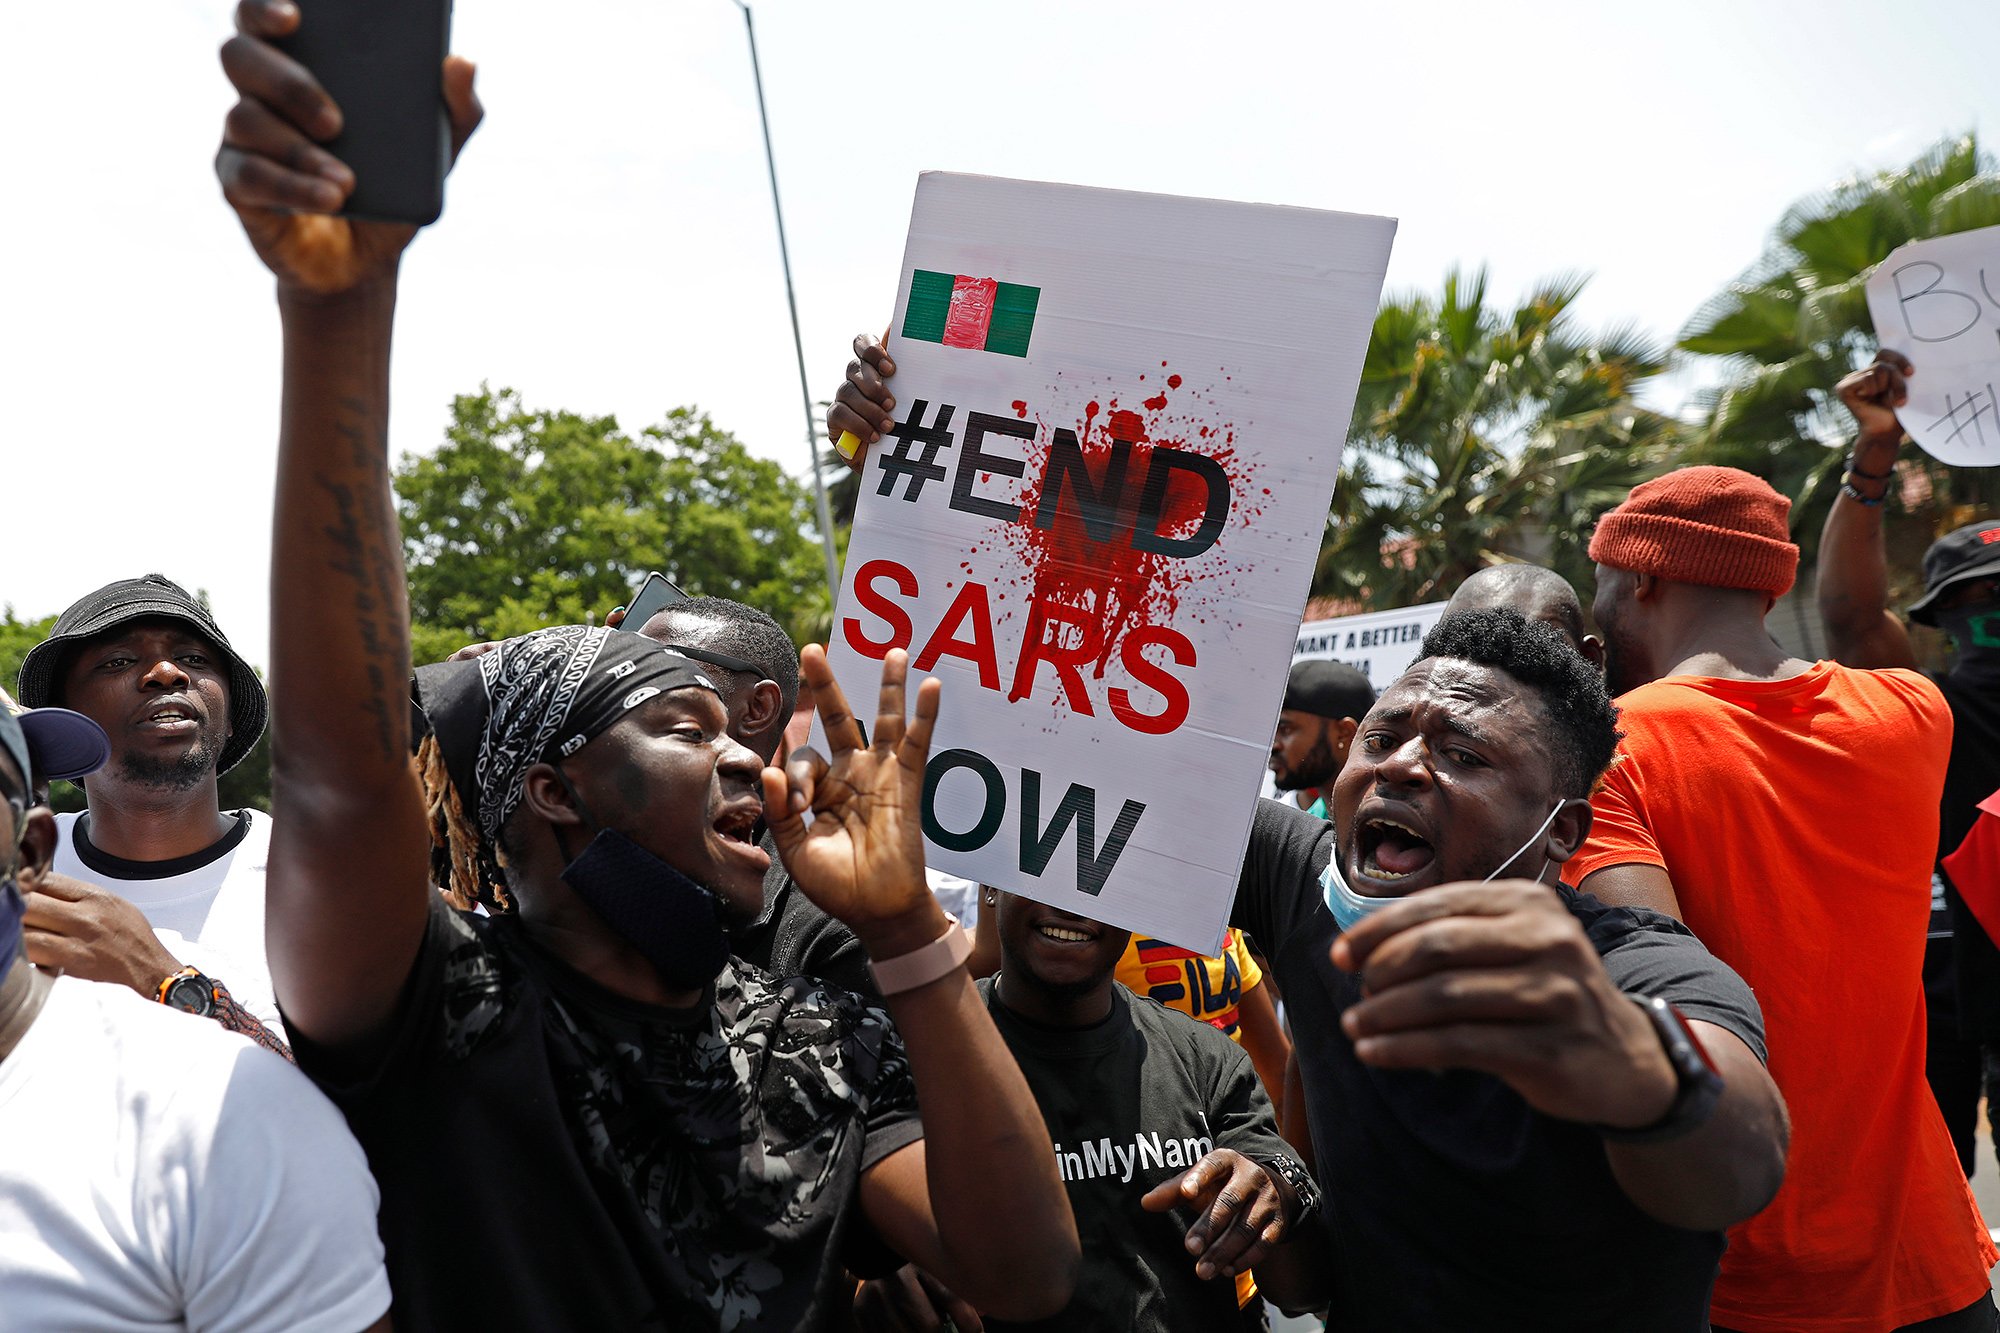 Nigeria's government is attempting to quell demonstrations against police brutality.